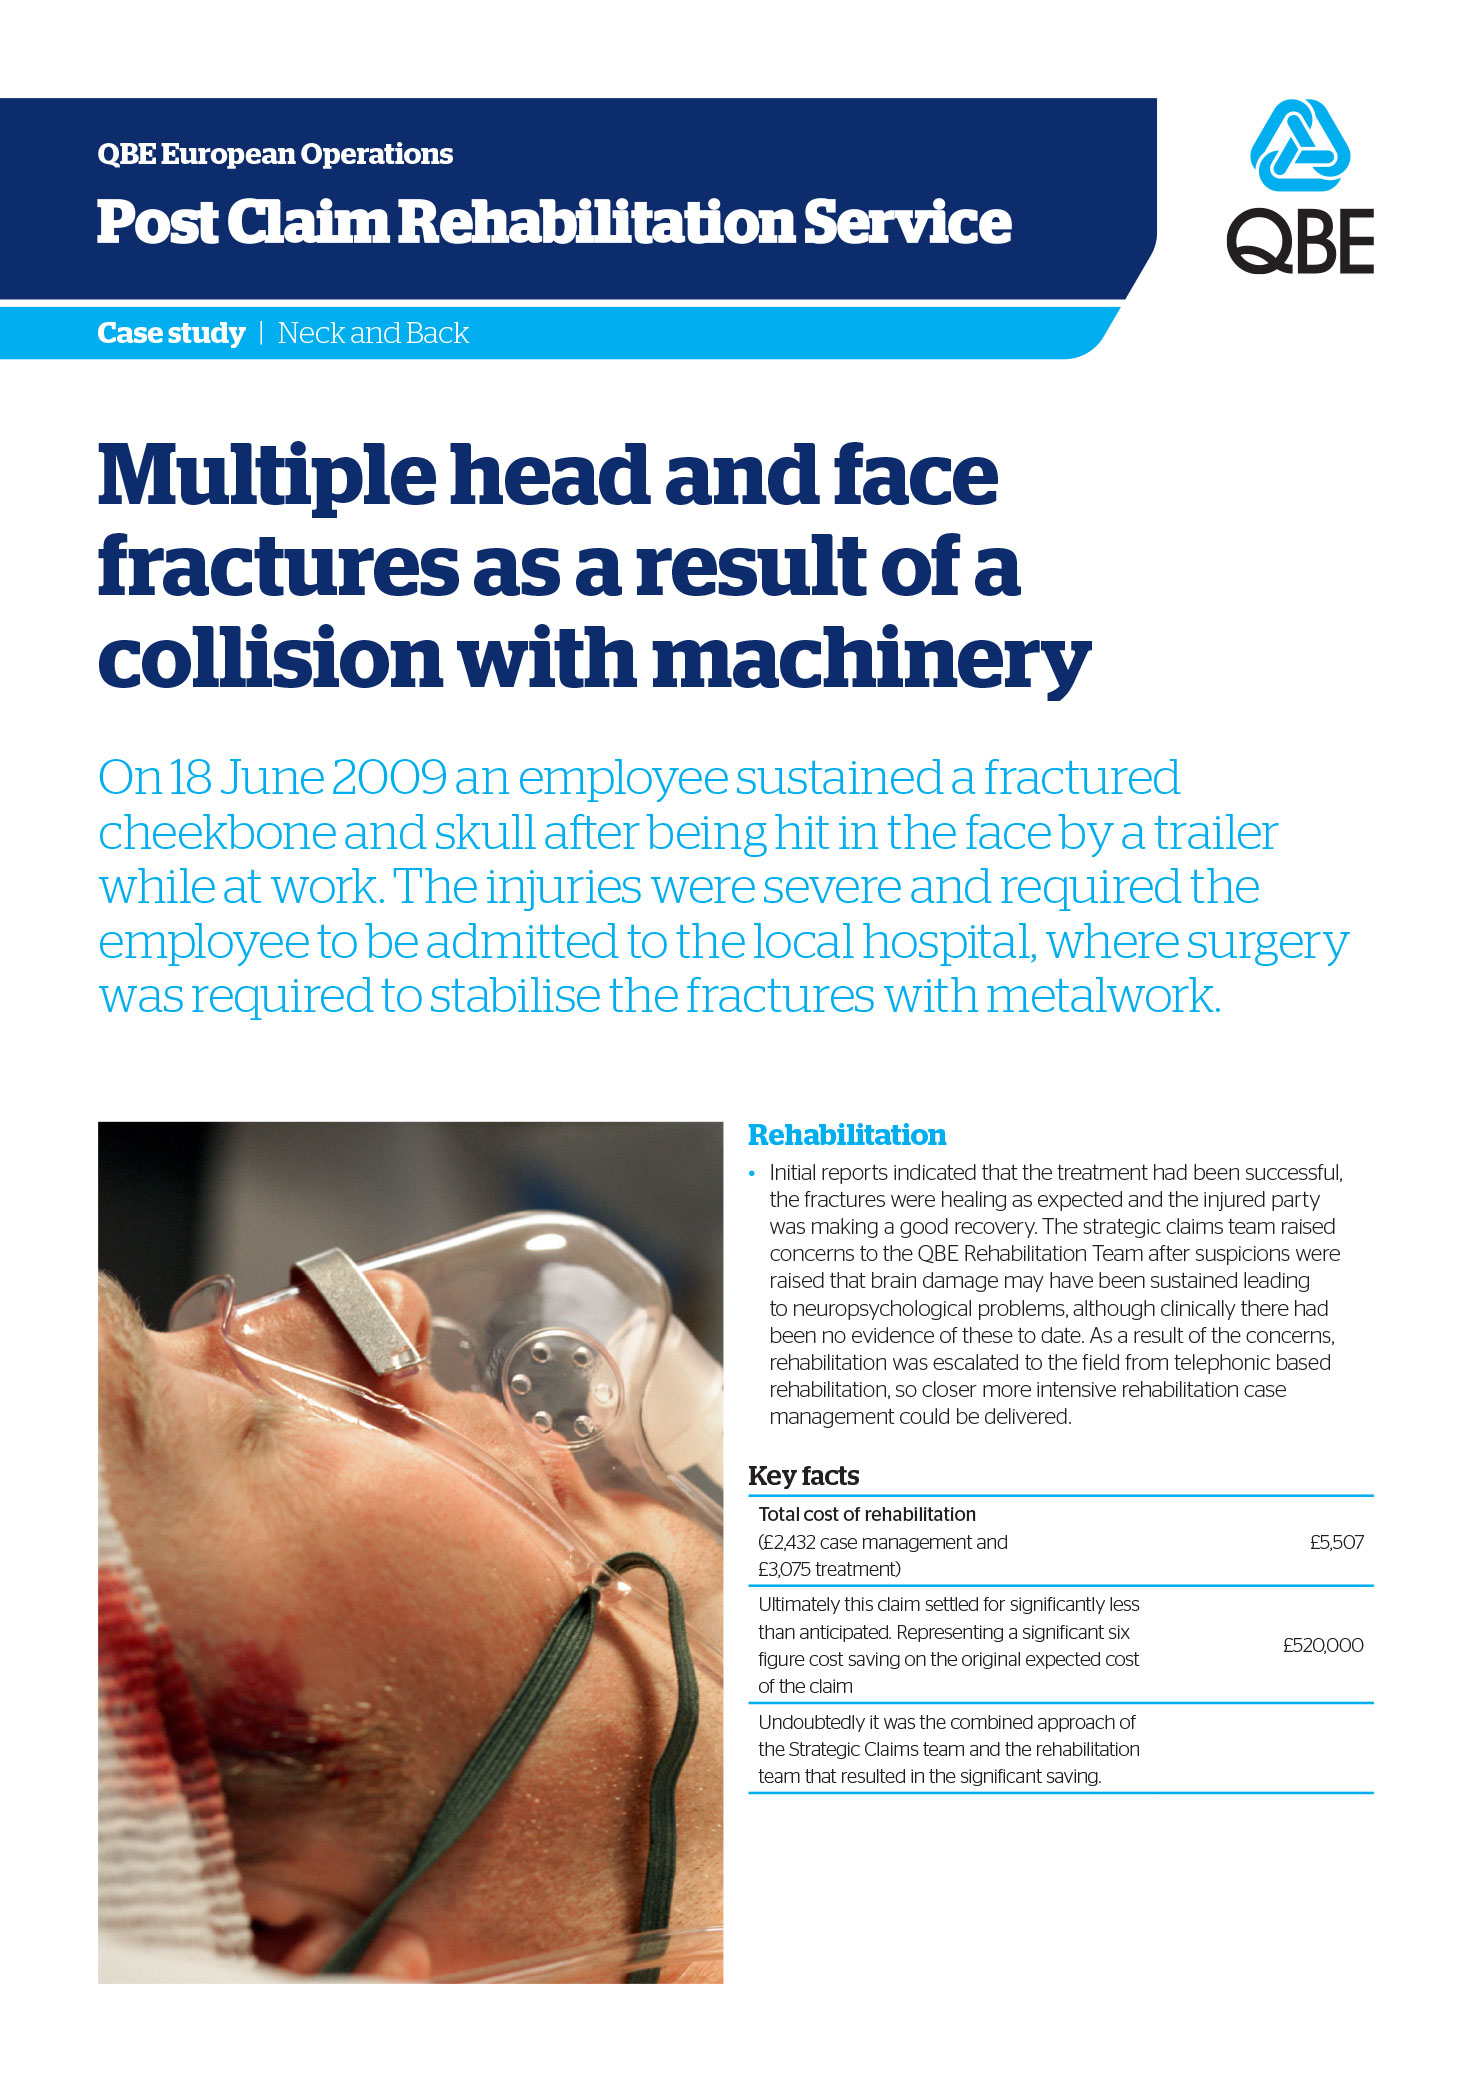 Multiple serious crush injuries as a result of heavy machinery falling